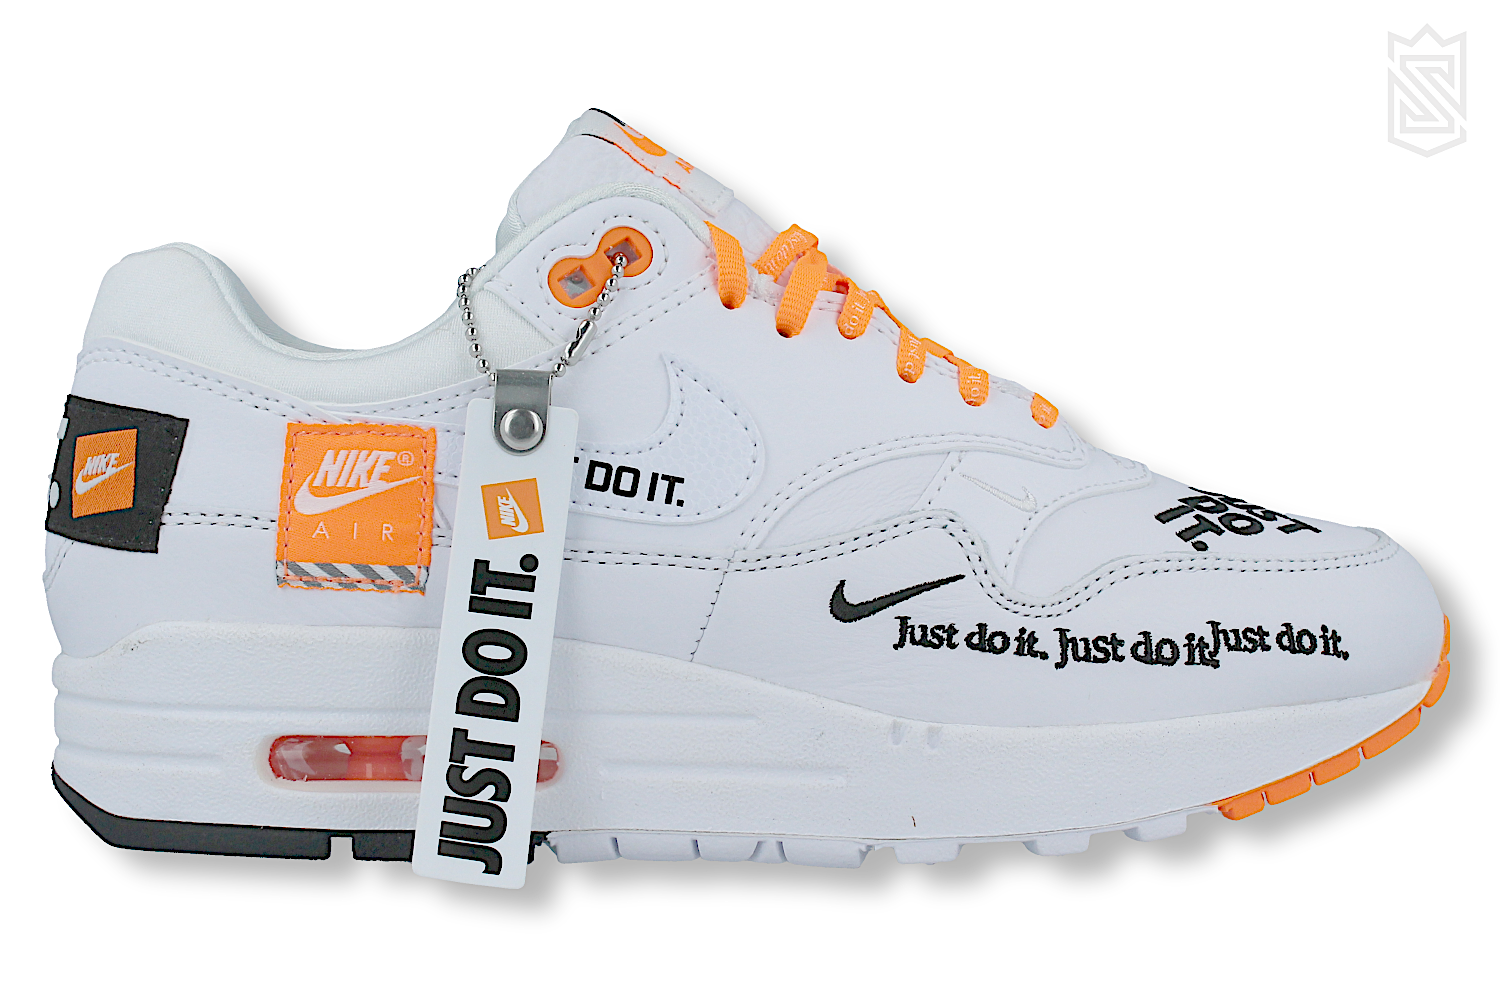 air max 1 just do it pack